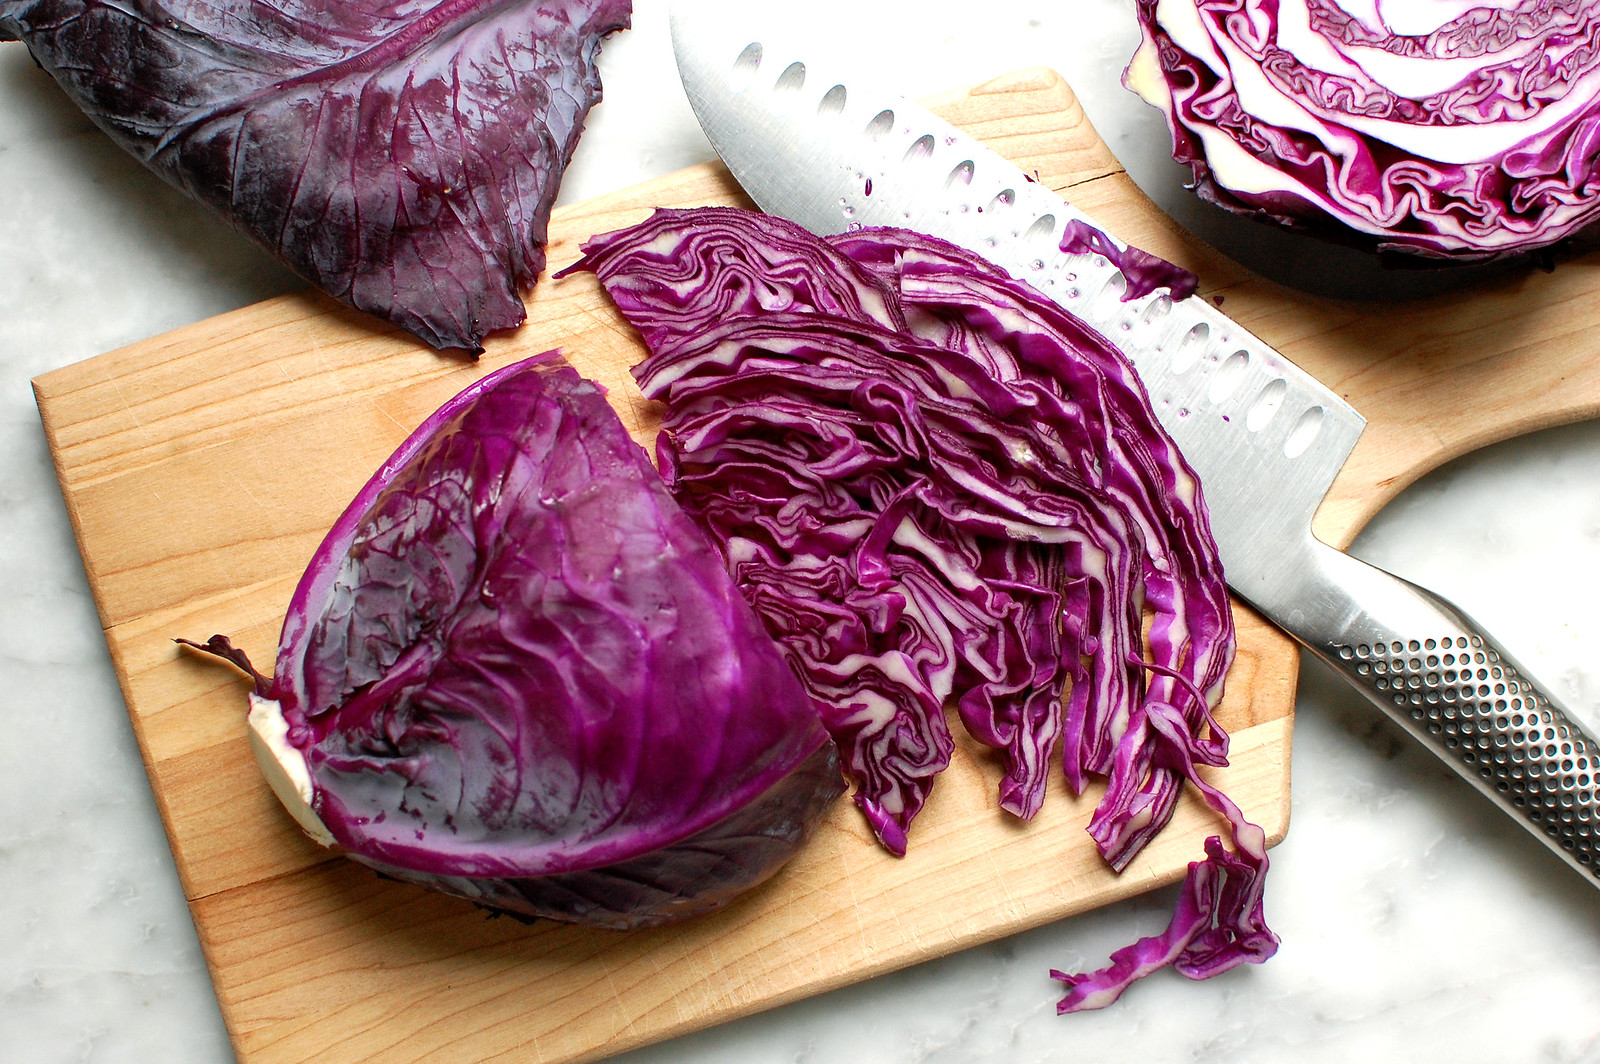 sliced red cabbage on cutting board